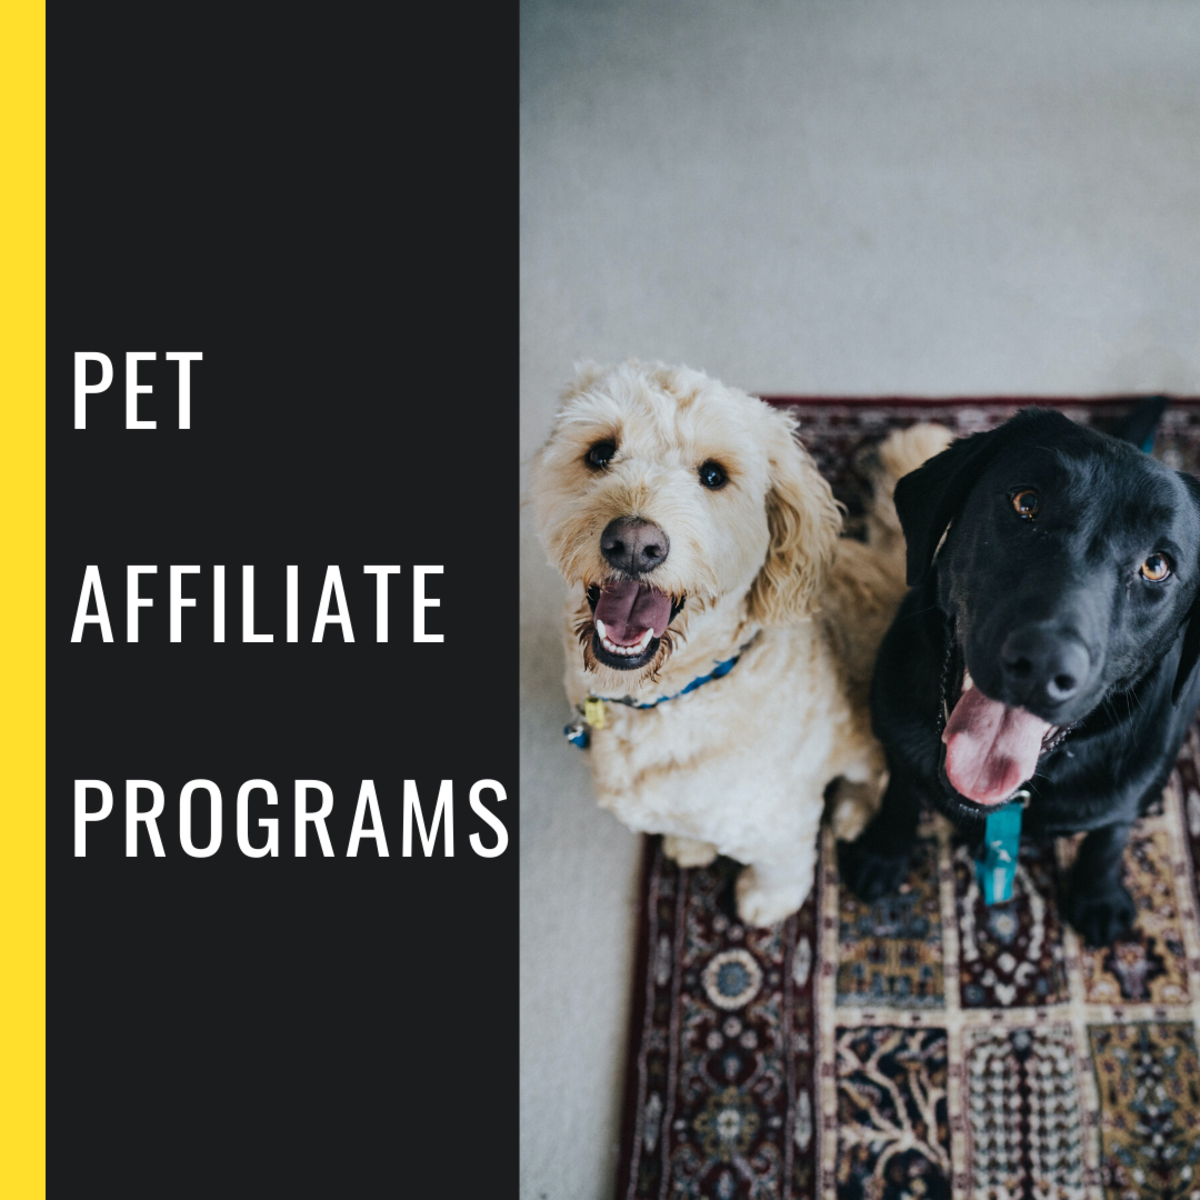 Learn more about these pet affiliate programs to see which is best for you.